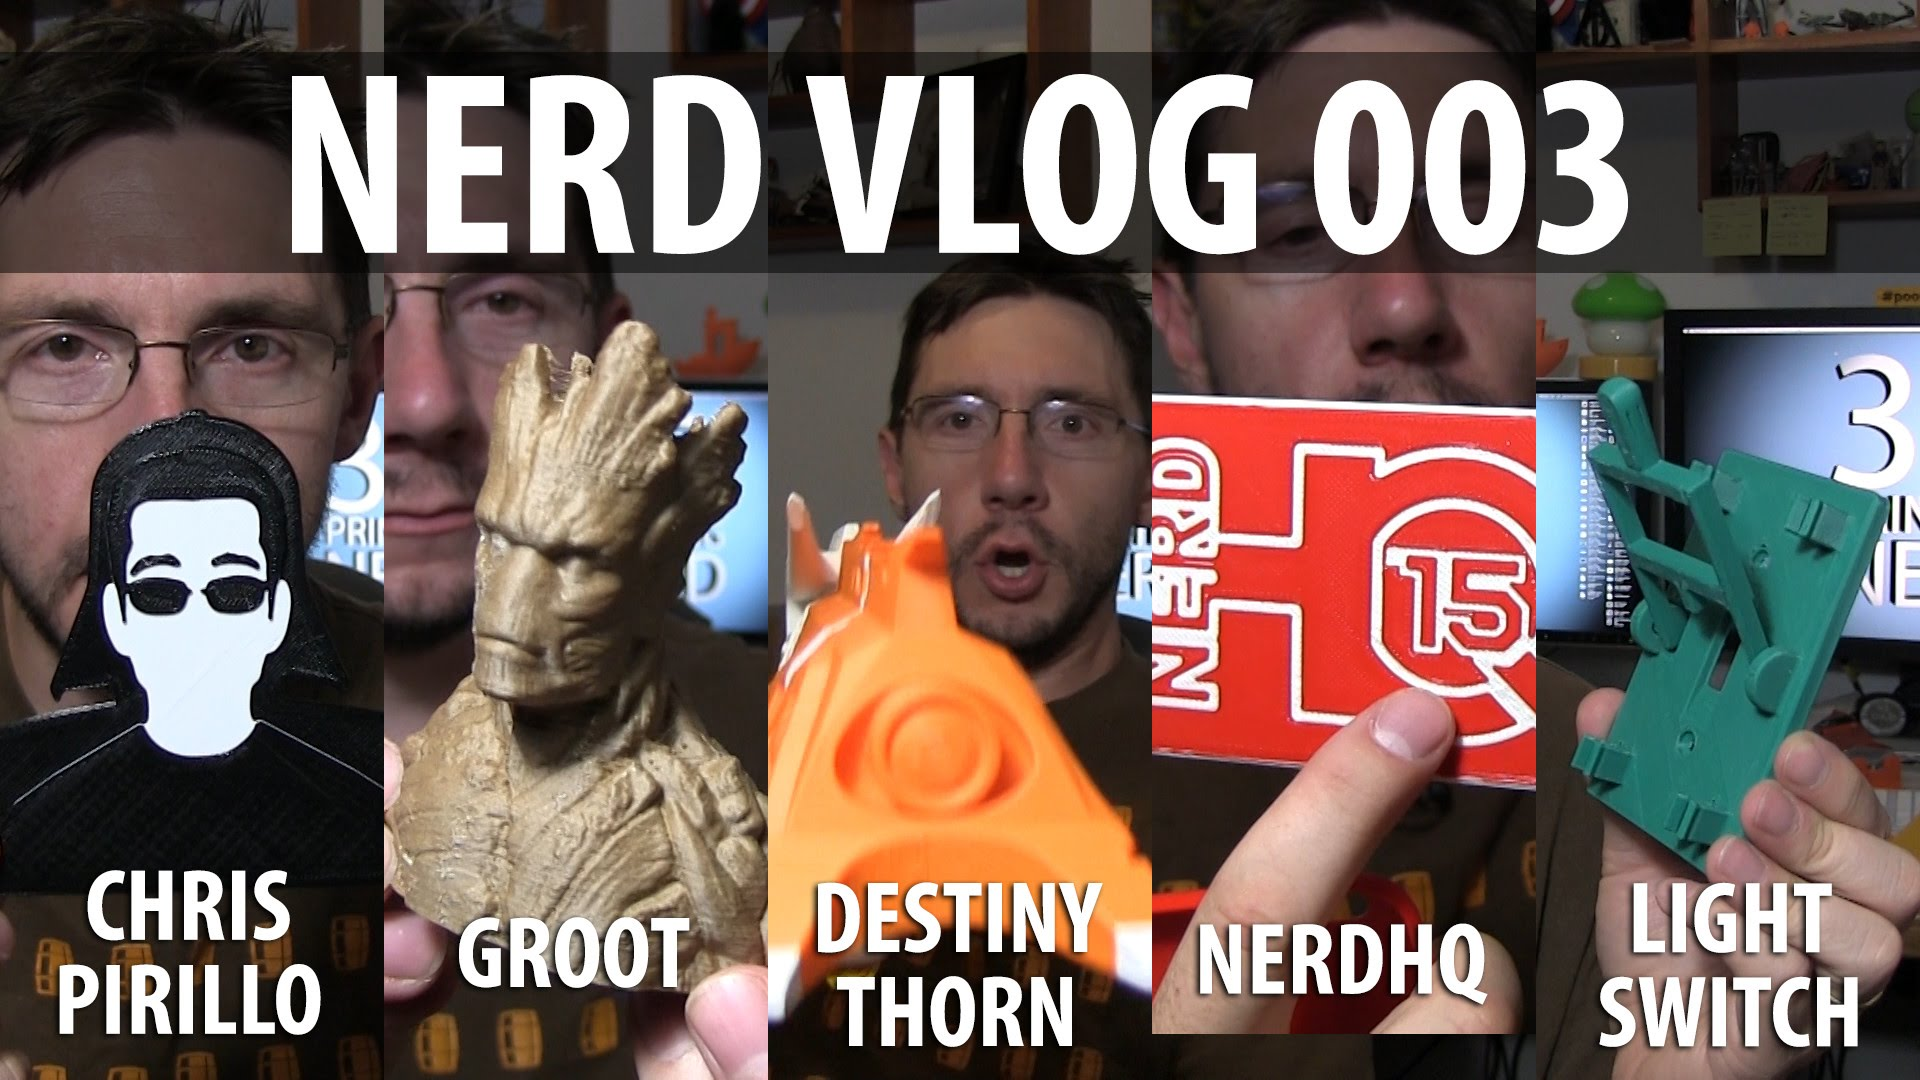 3D Printing Chris Pirillo, Groot, the Thorn from Destiny, NerdHQ and a Light Switch – Nerd Vlog 003